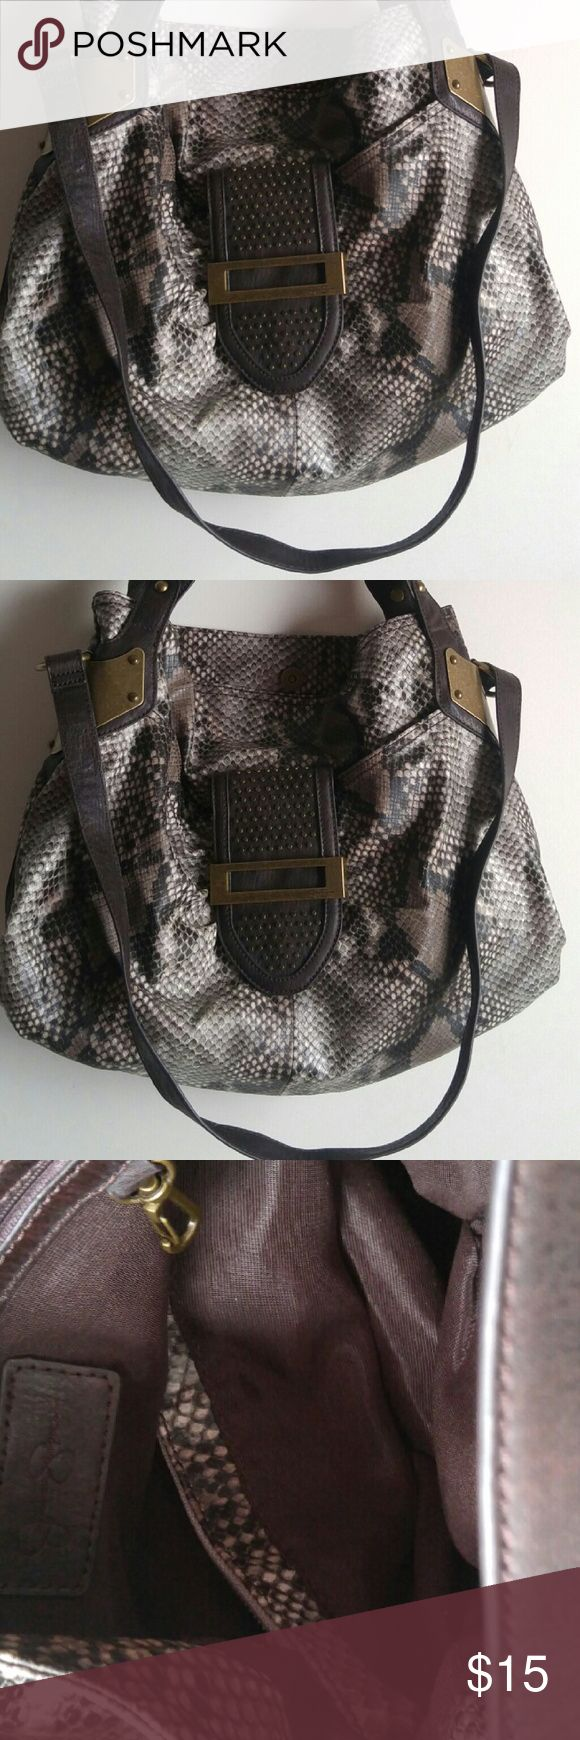 """JESSICA SIMPSON BEAUTIFUL LADIES BROWN/GRAY HANDBA Excellent condition. Please see pictures. Please use the measurement below to determine size. Height: 14"""" Length: 18"""" Depth:6"""" Stripe: 12"""" & 16"""" Please check out my other item. Thanks jessica simpson Bags Shoulder Bags"""